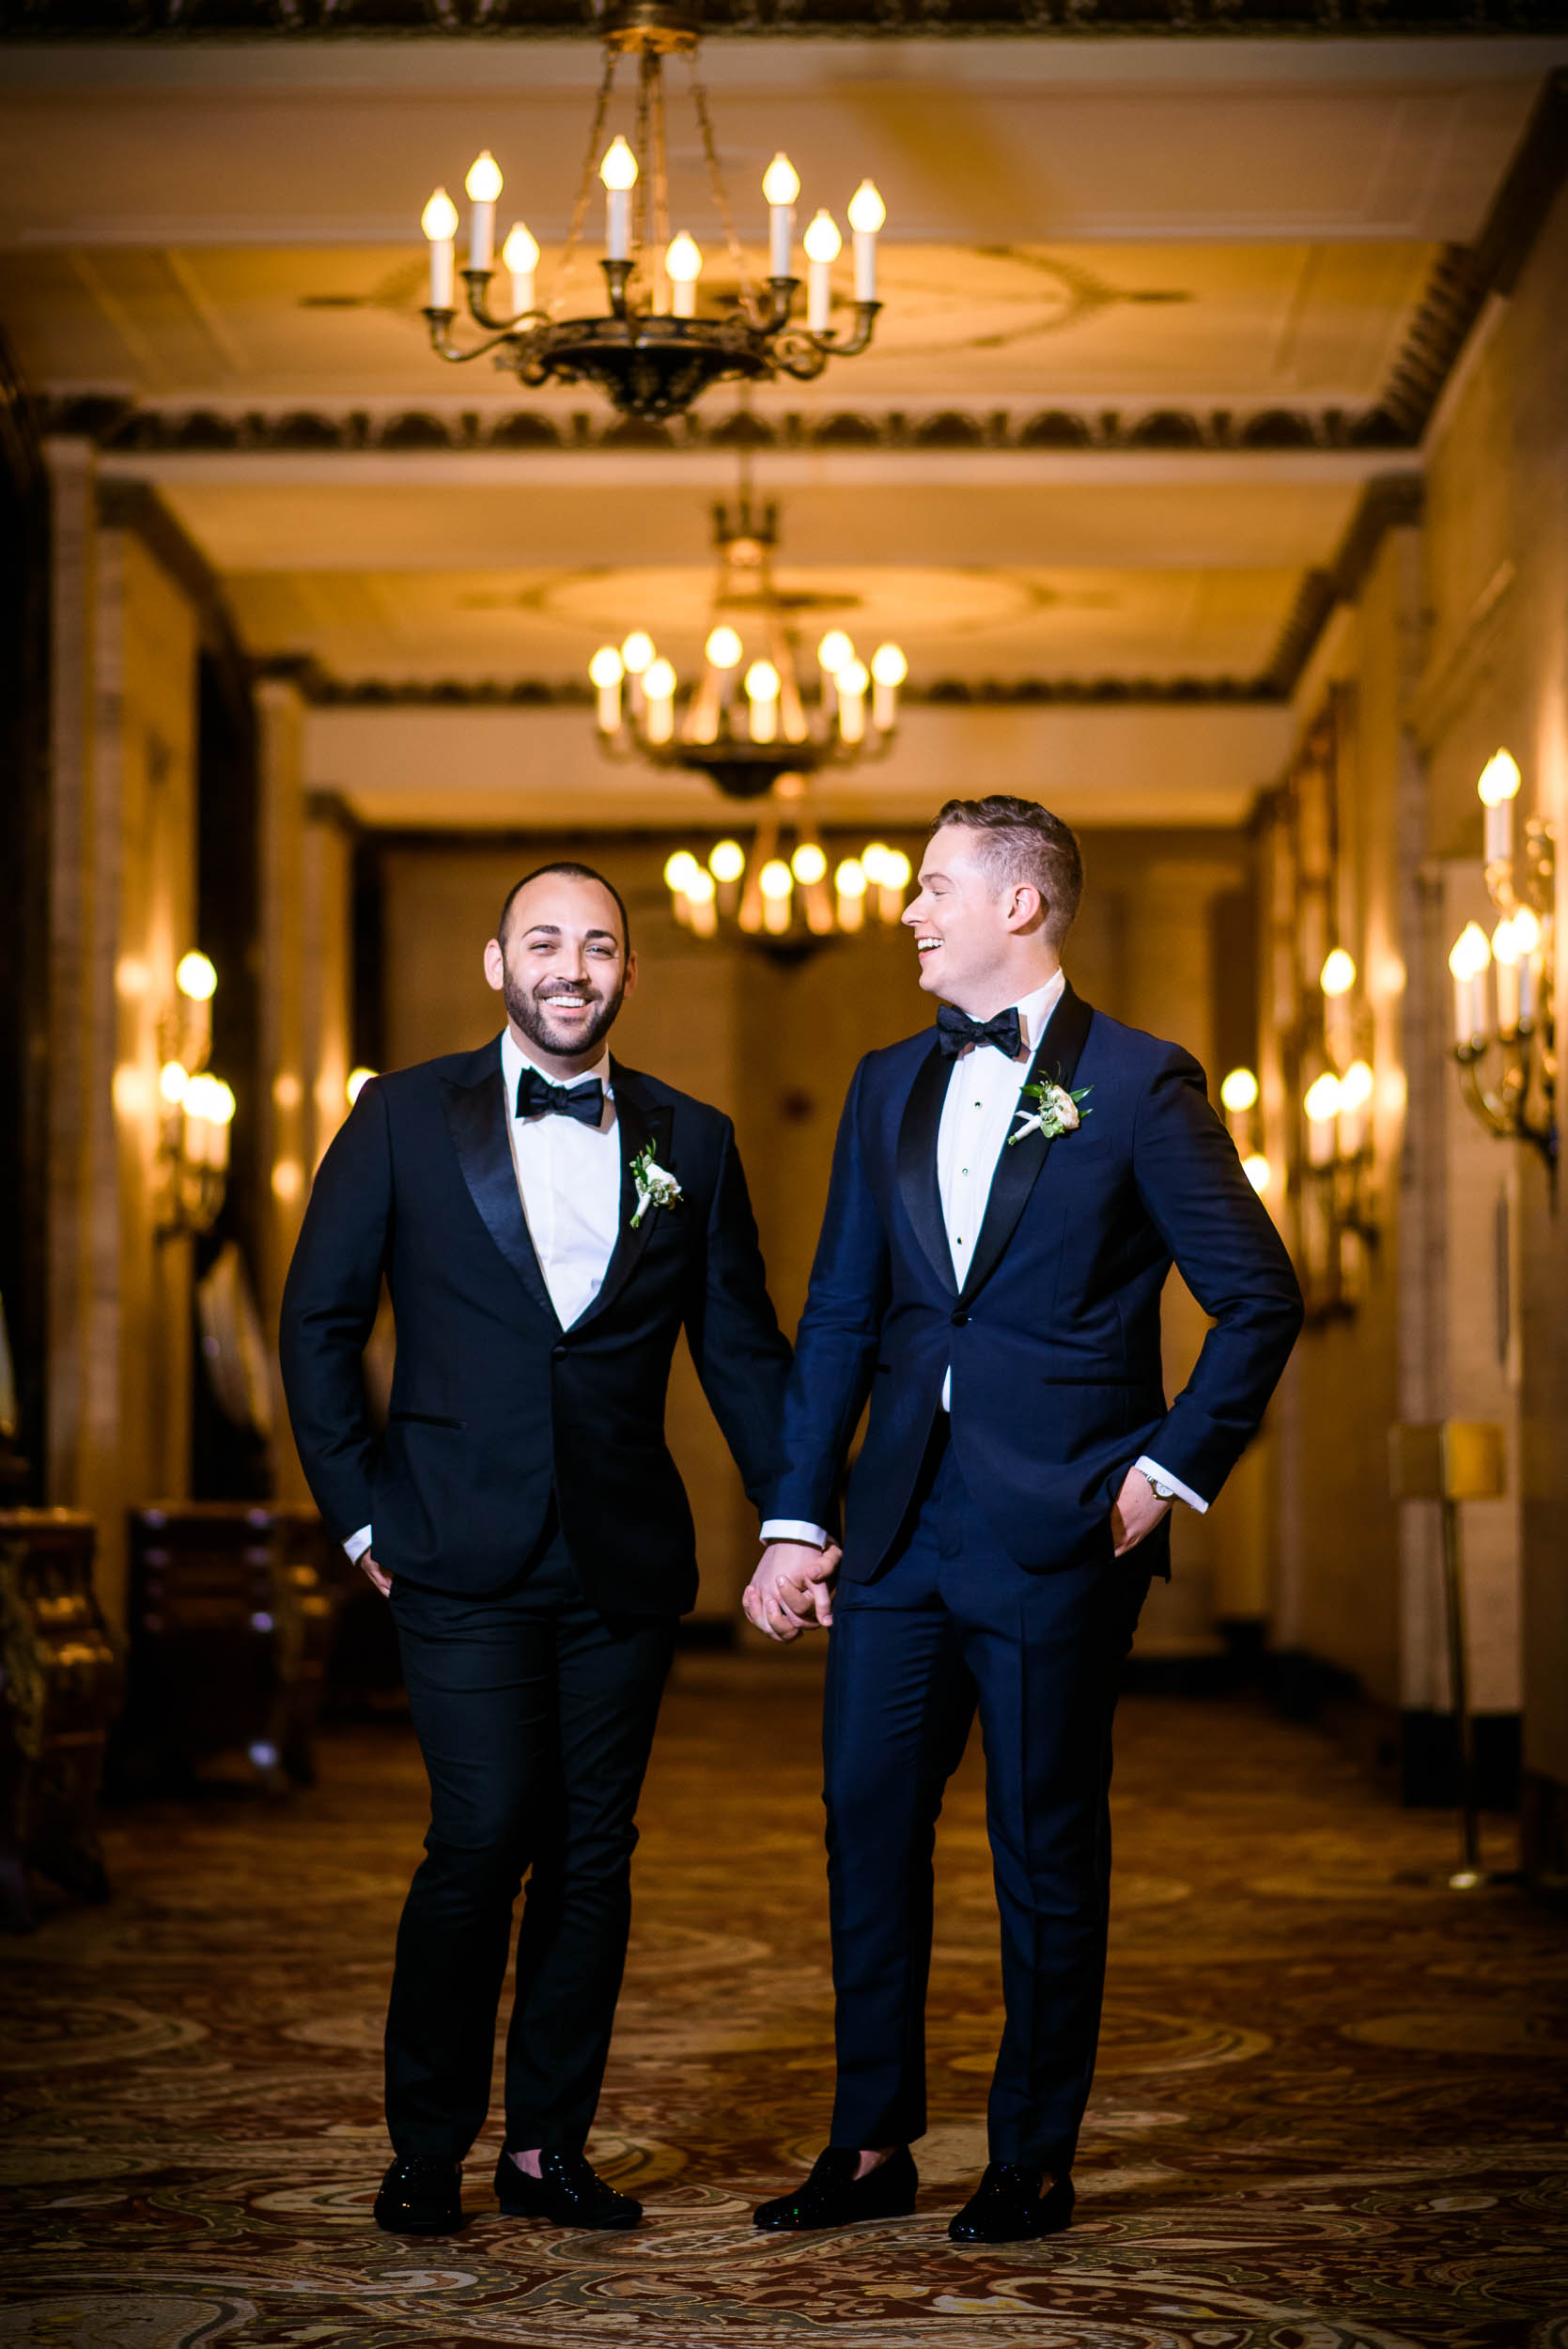 Trendy grooms attire for luxurious fall wedding at the Chicago Symphony Center captured by J. Brown Photography. See more wedding ideas at jbrownphotography.com!